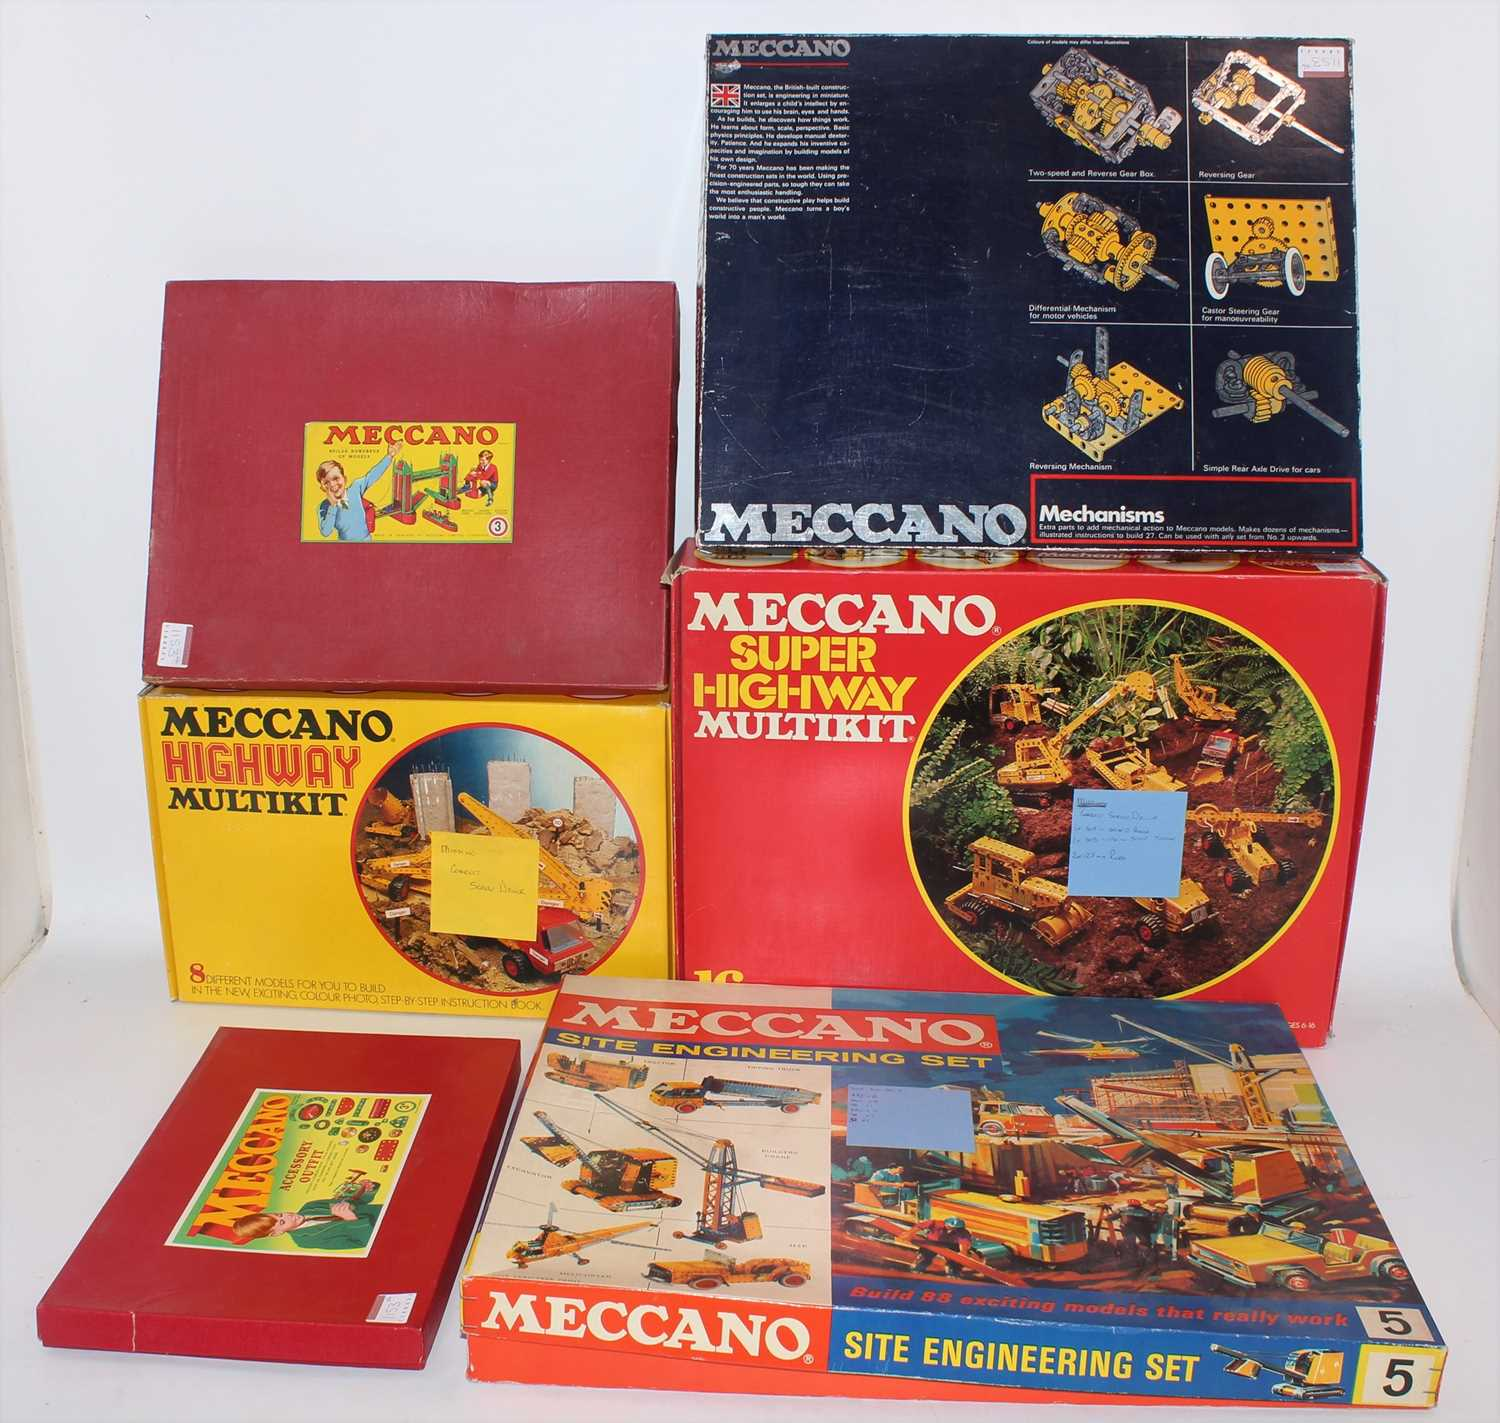 A collection of Meccano mixed issue construction kits and empty boxes to include a Meccano Super